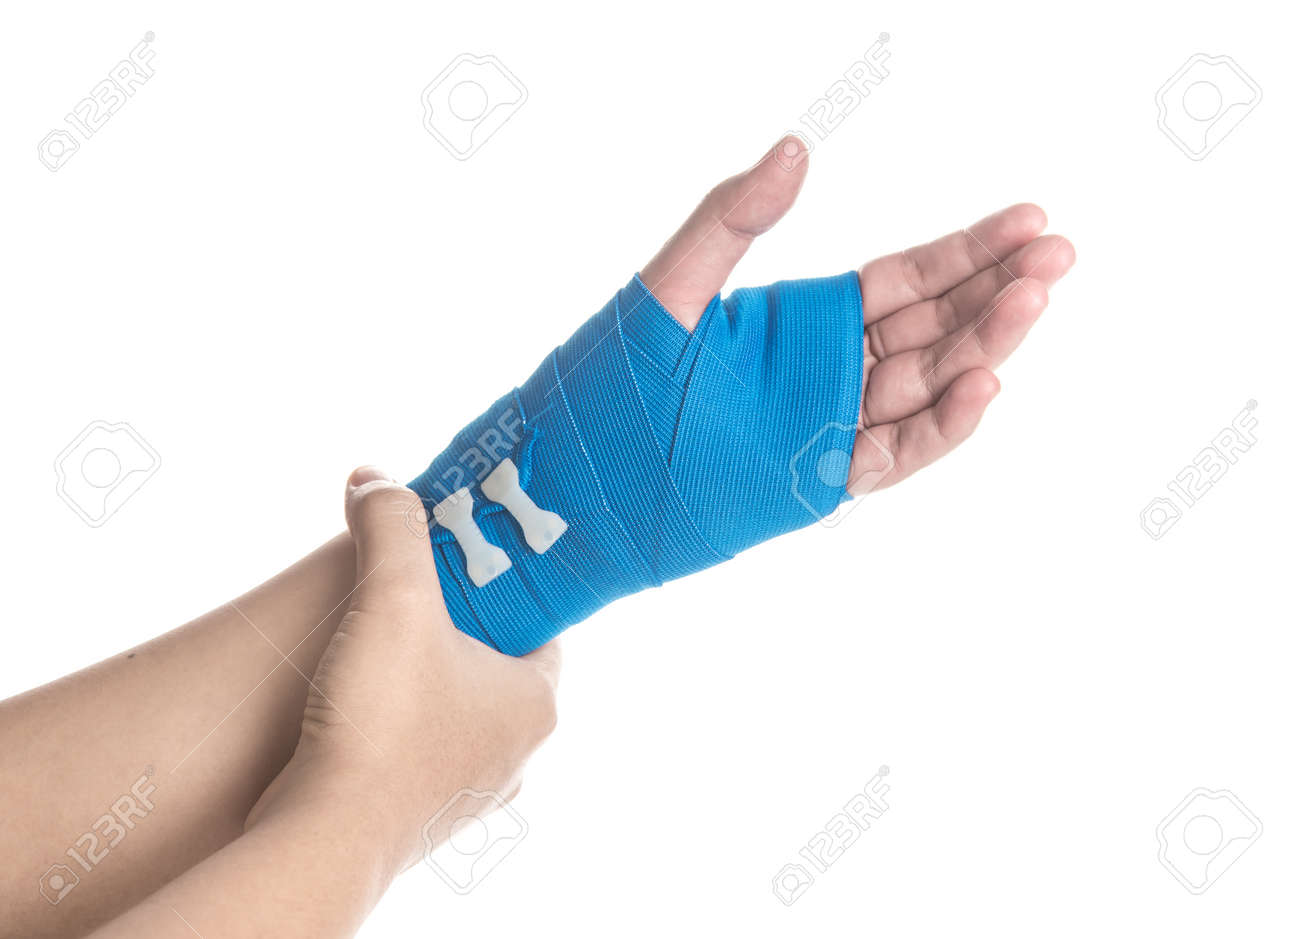 Hand Wrapped In Elastic Bandage On White Background Hand Pain